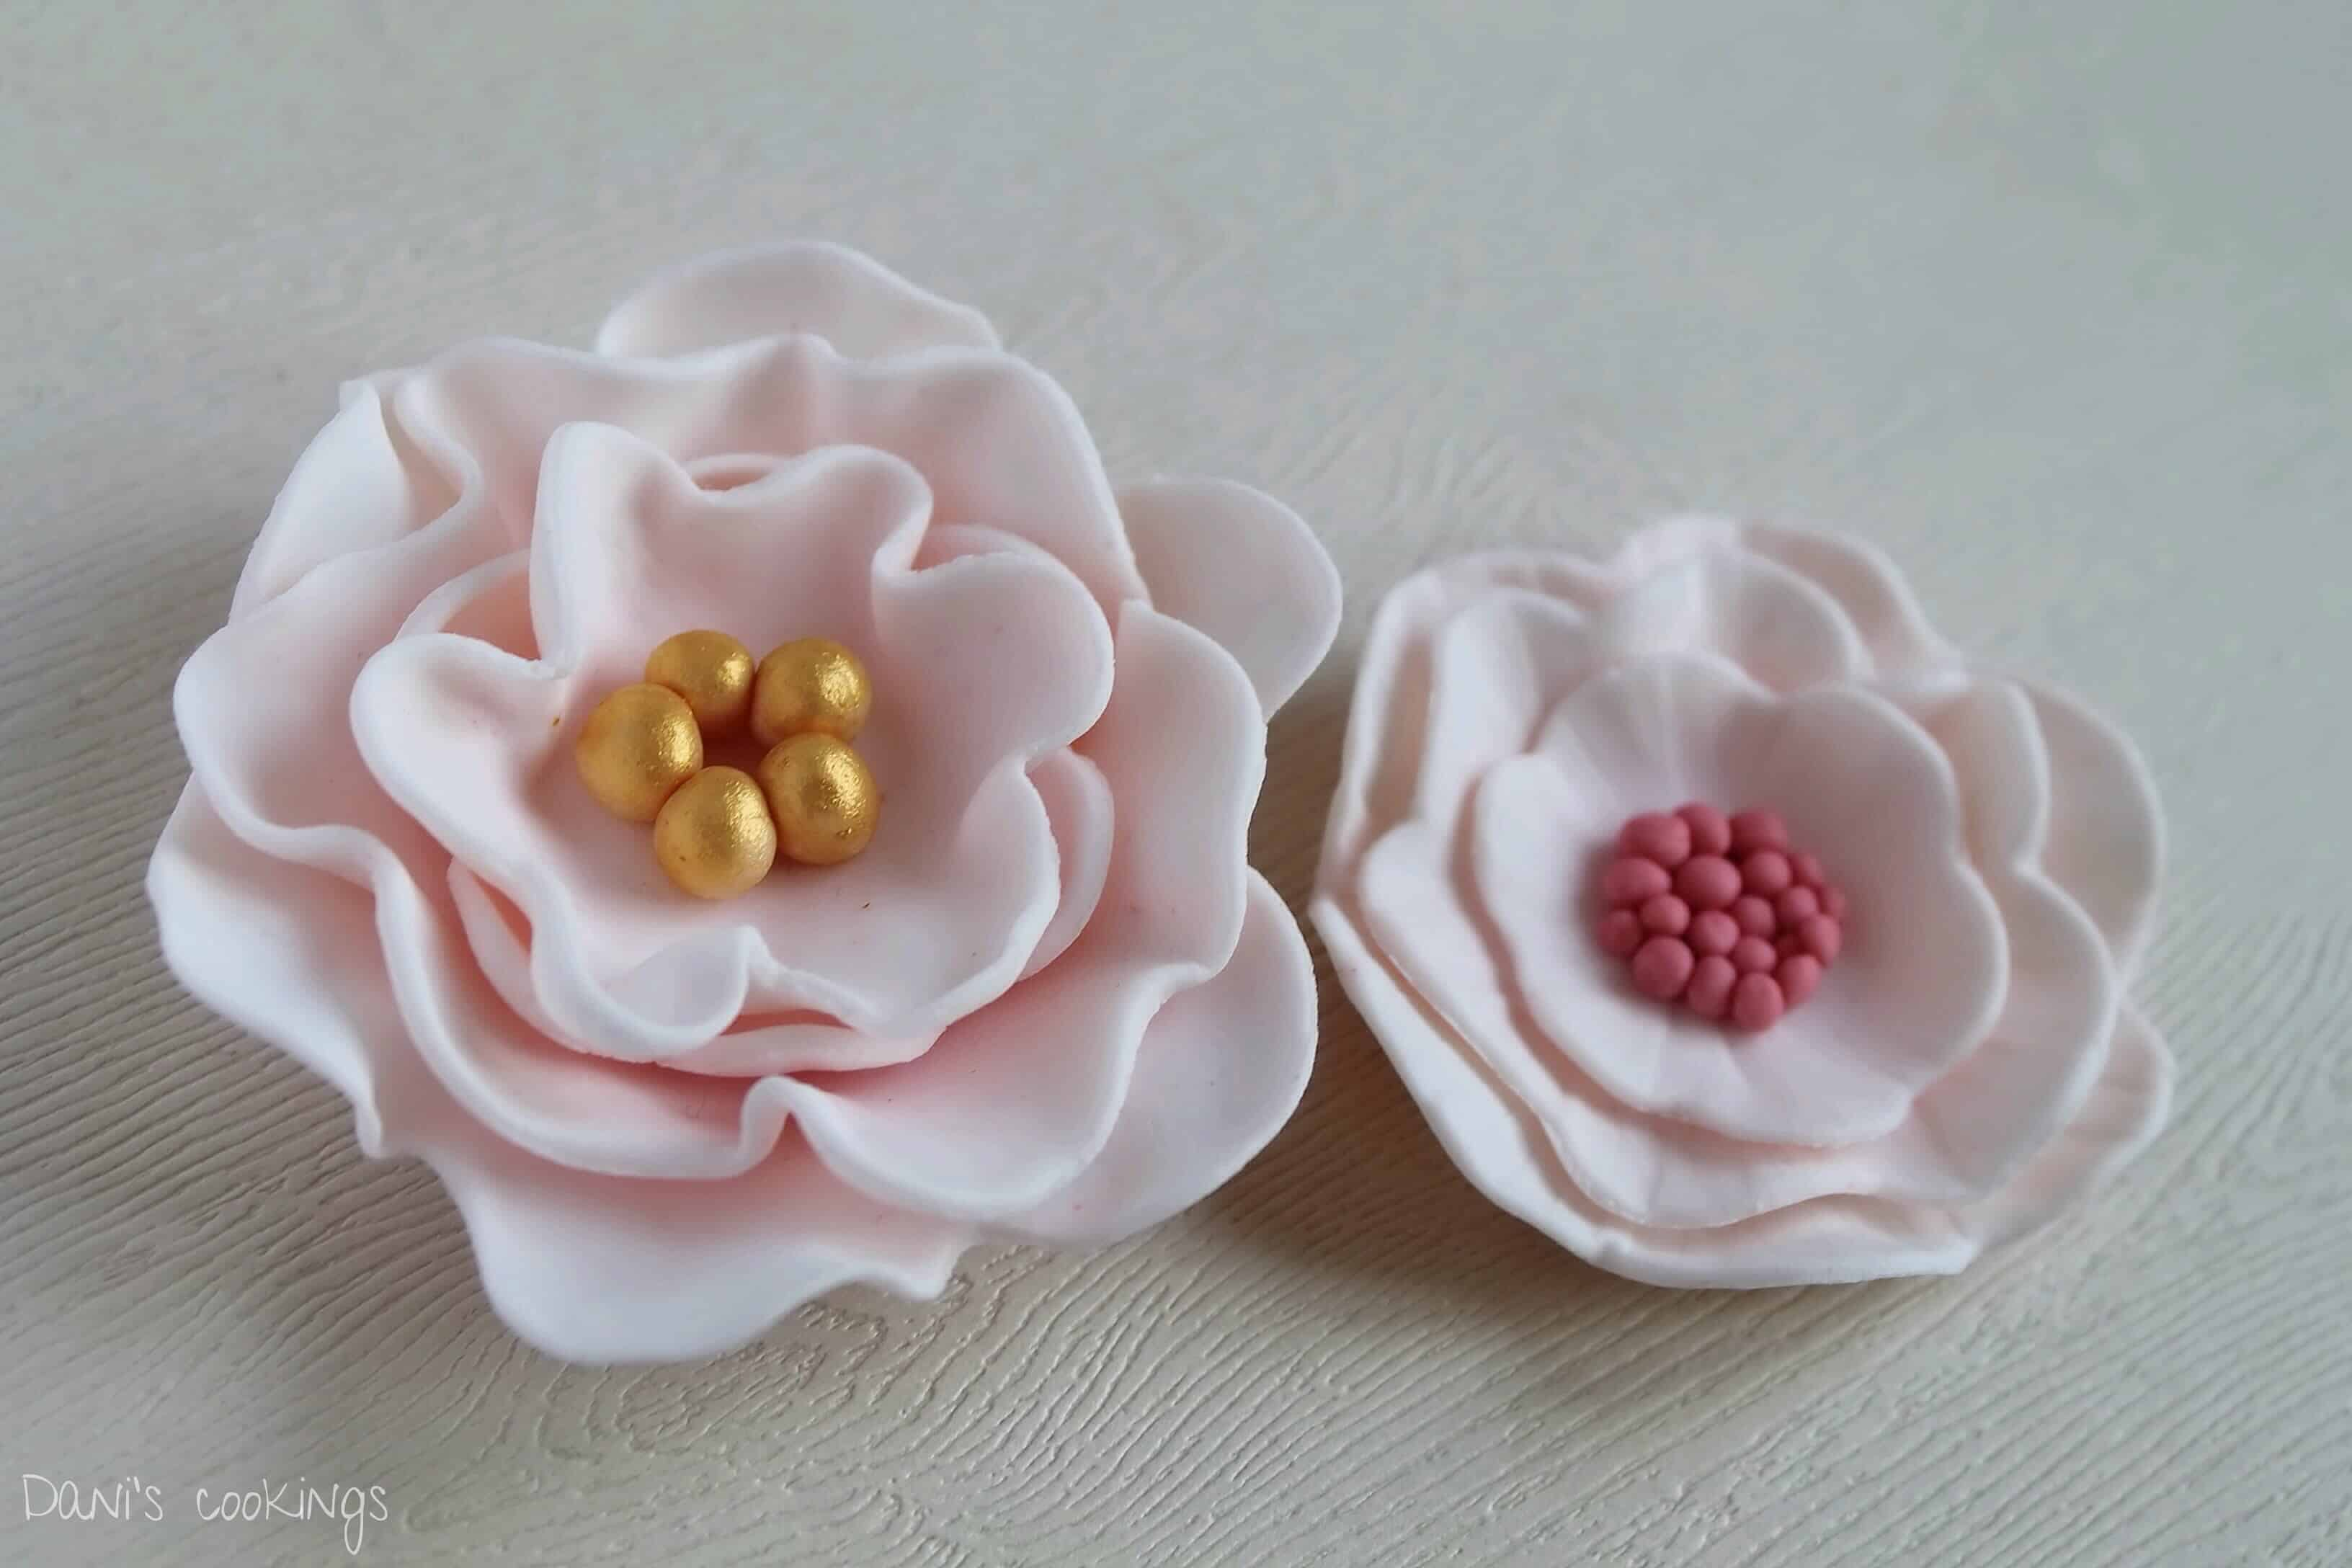 How to make fondant flowers - tutorial from daniscookings.wordpress.com